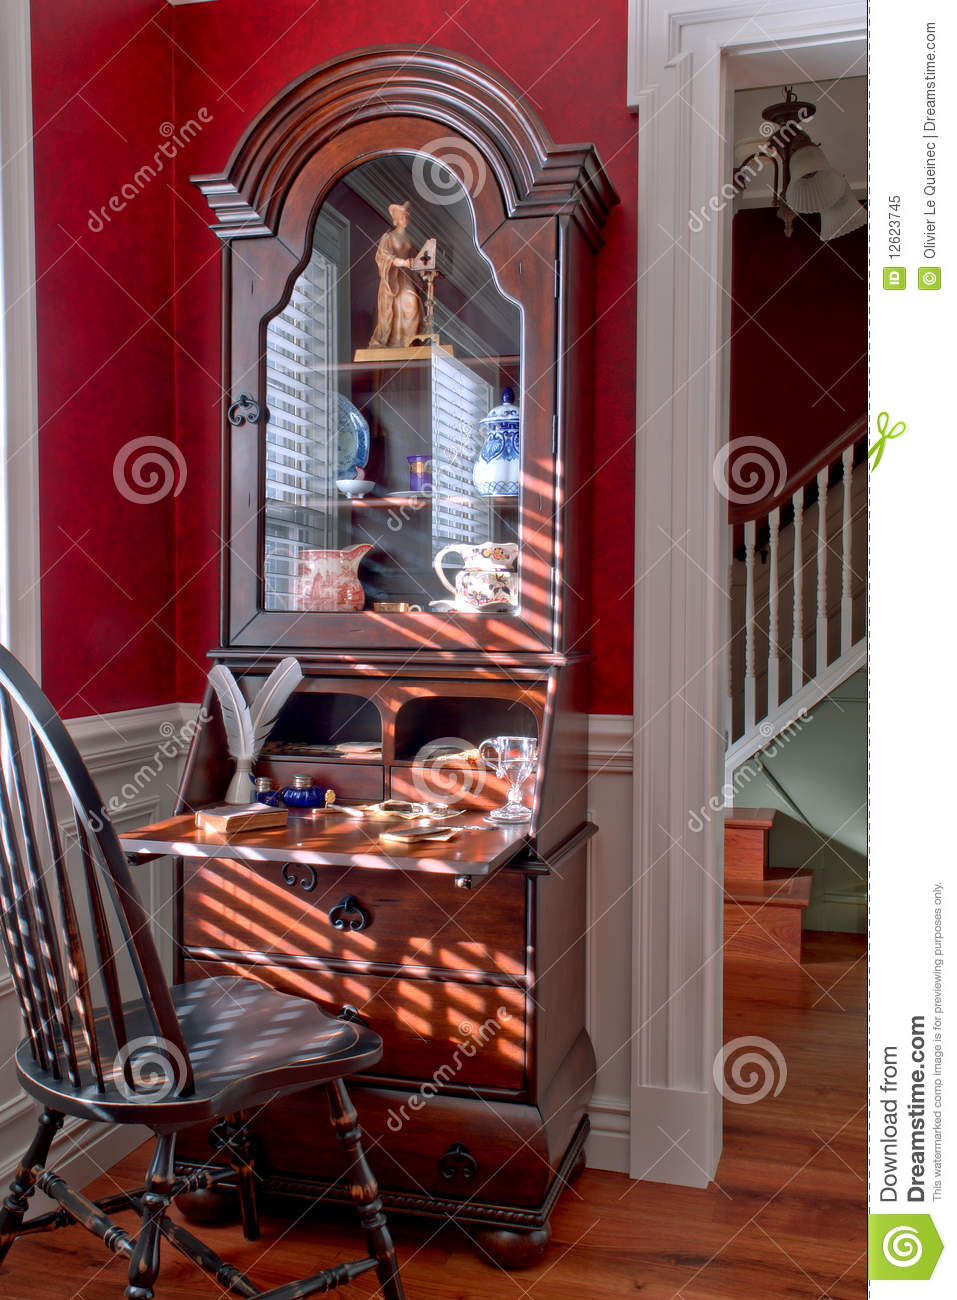 antique windsor chair wood waiting room chairs old colonial american style house interior stock image - image: 12623745